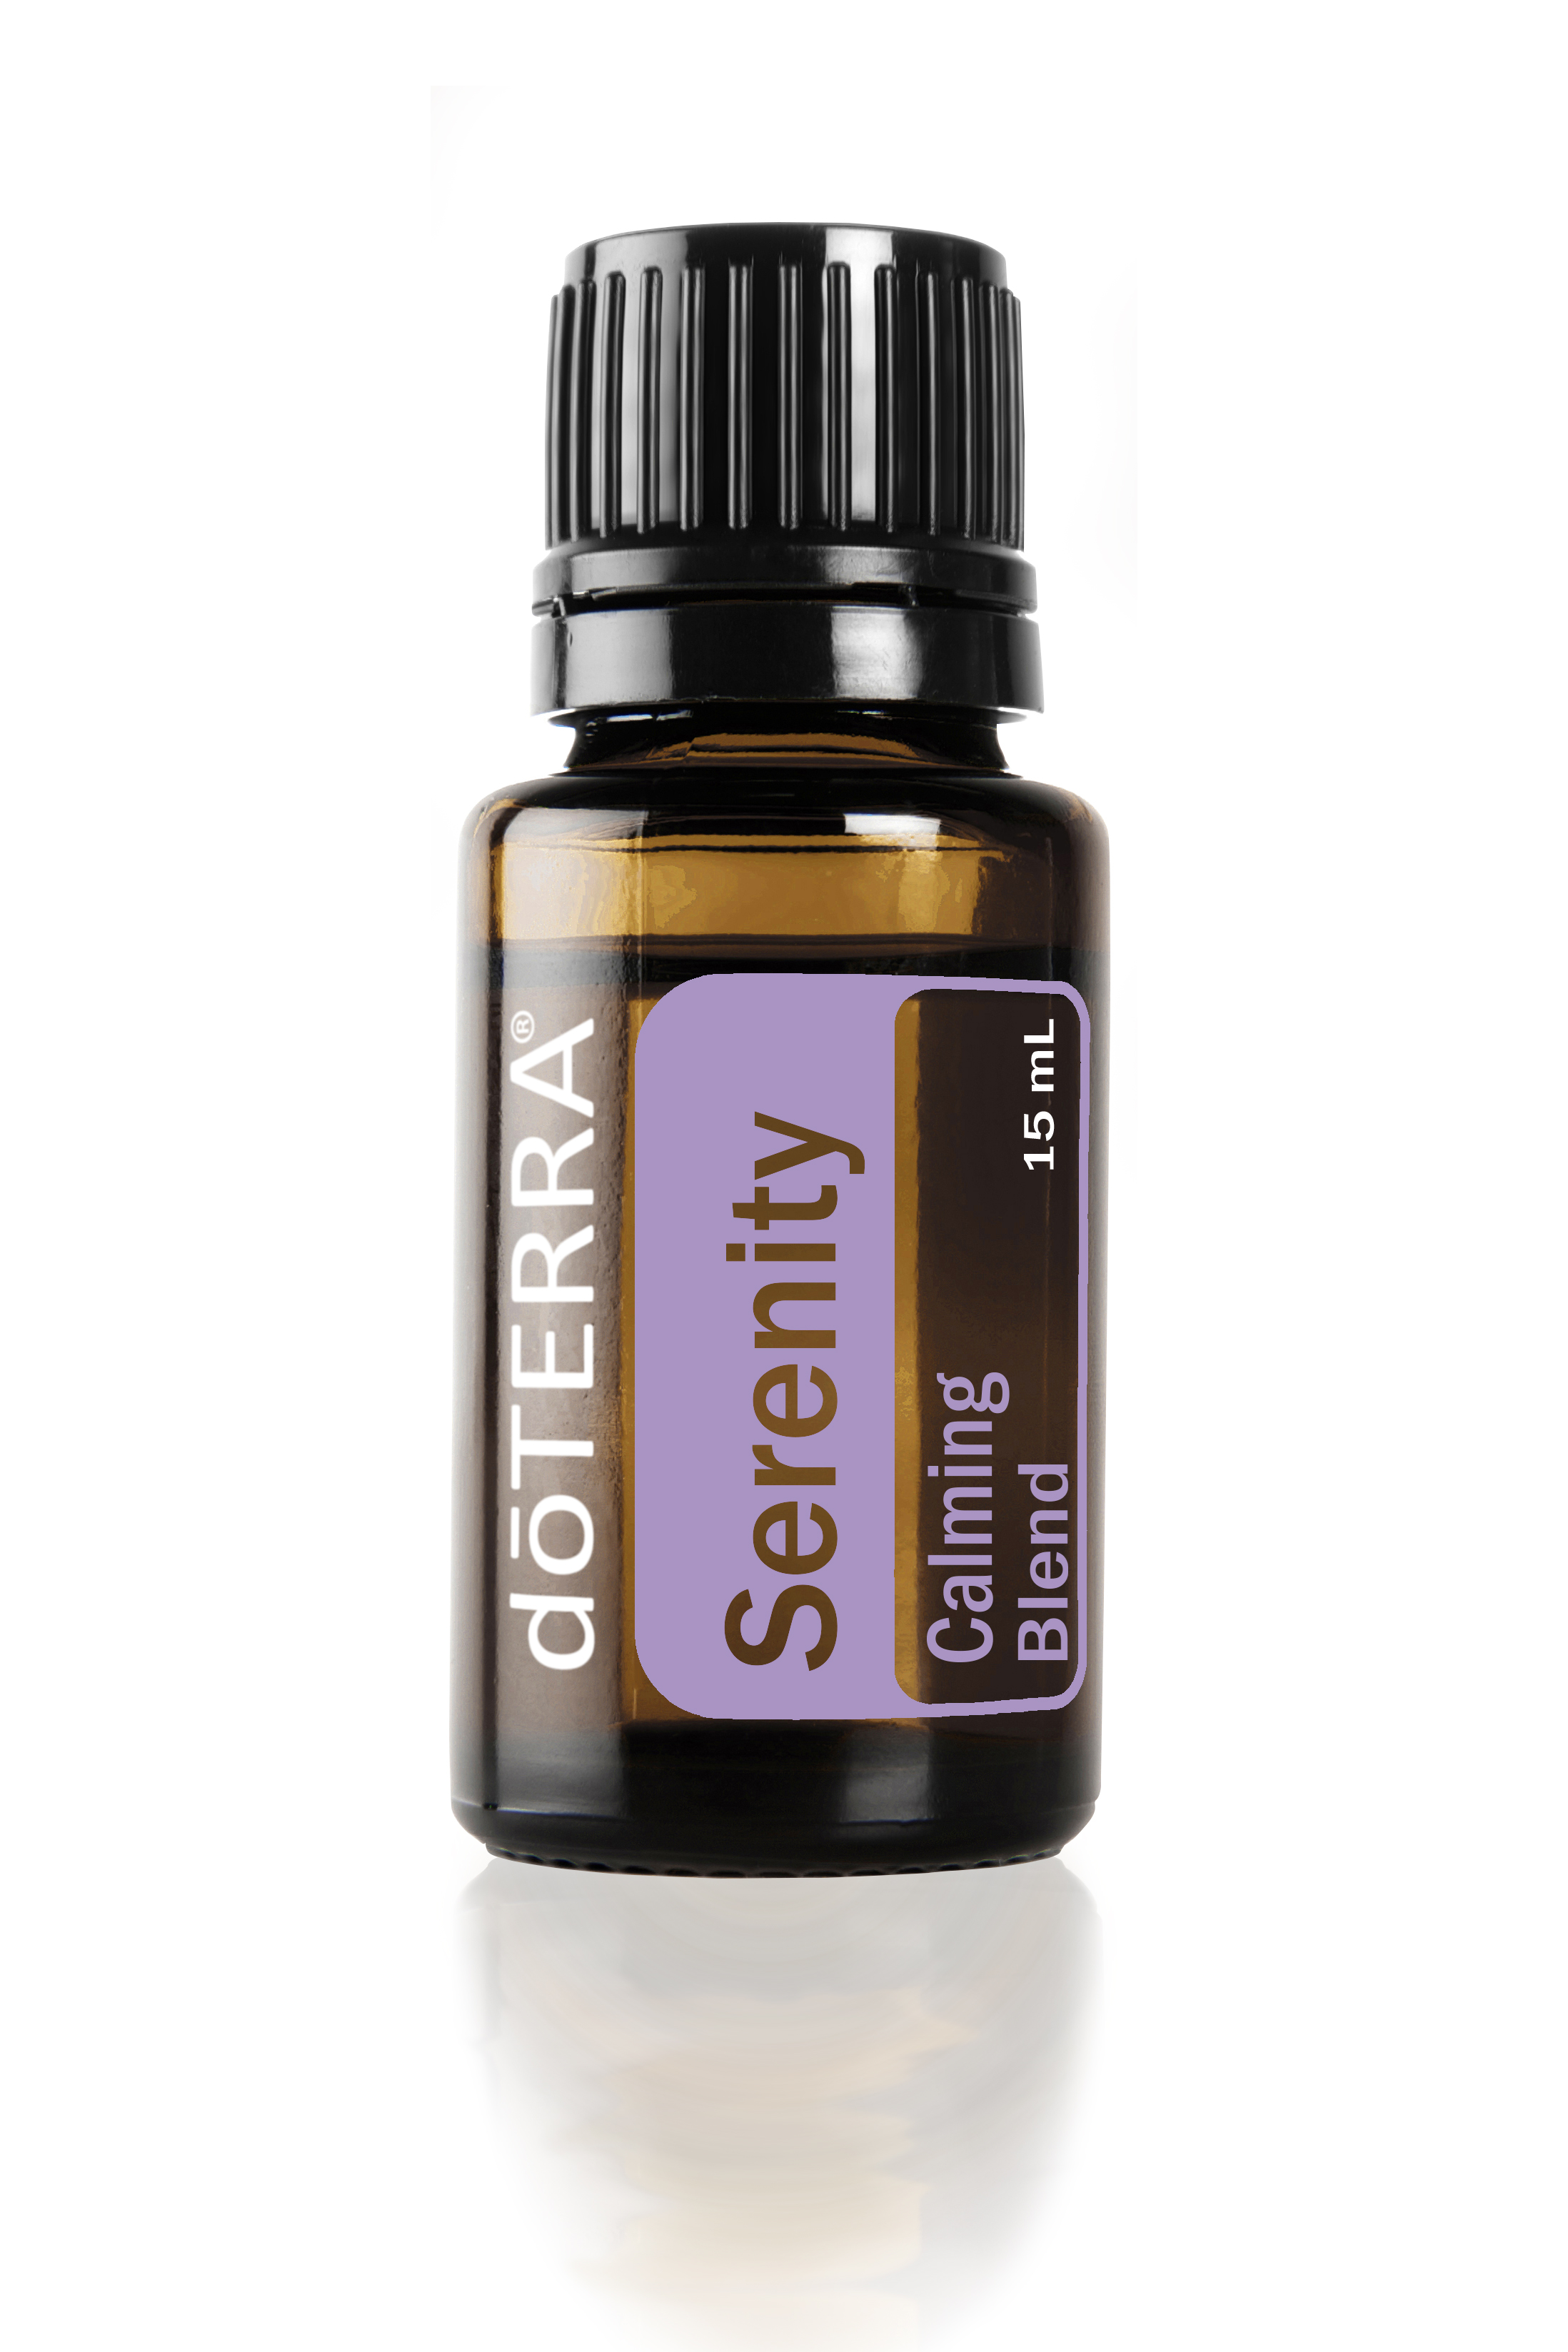 Serenity calms the senses and supports a restful nights sleep. -